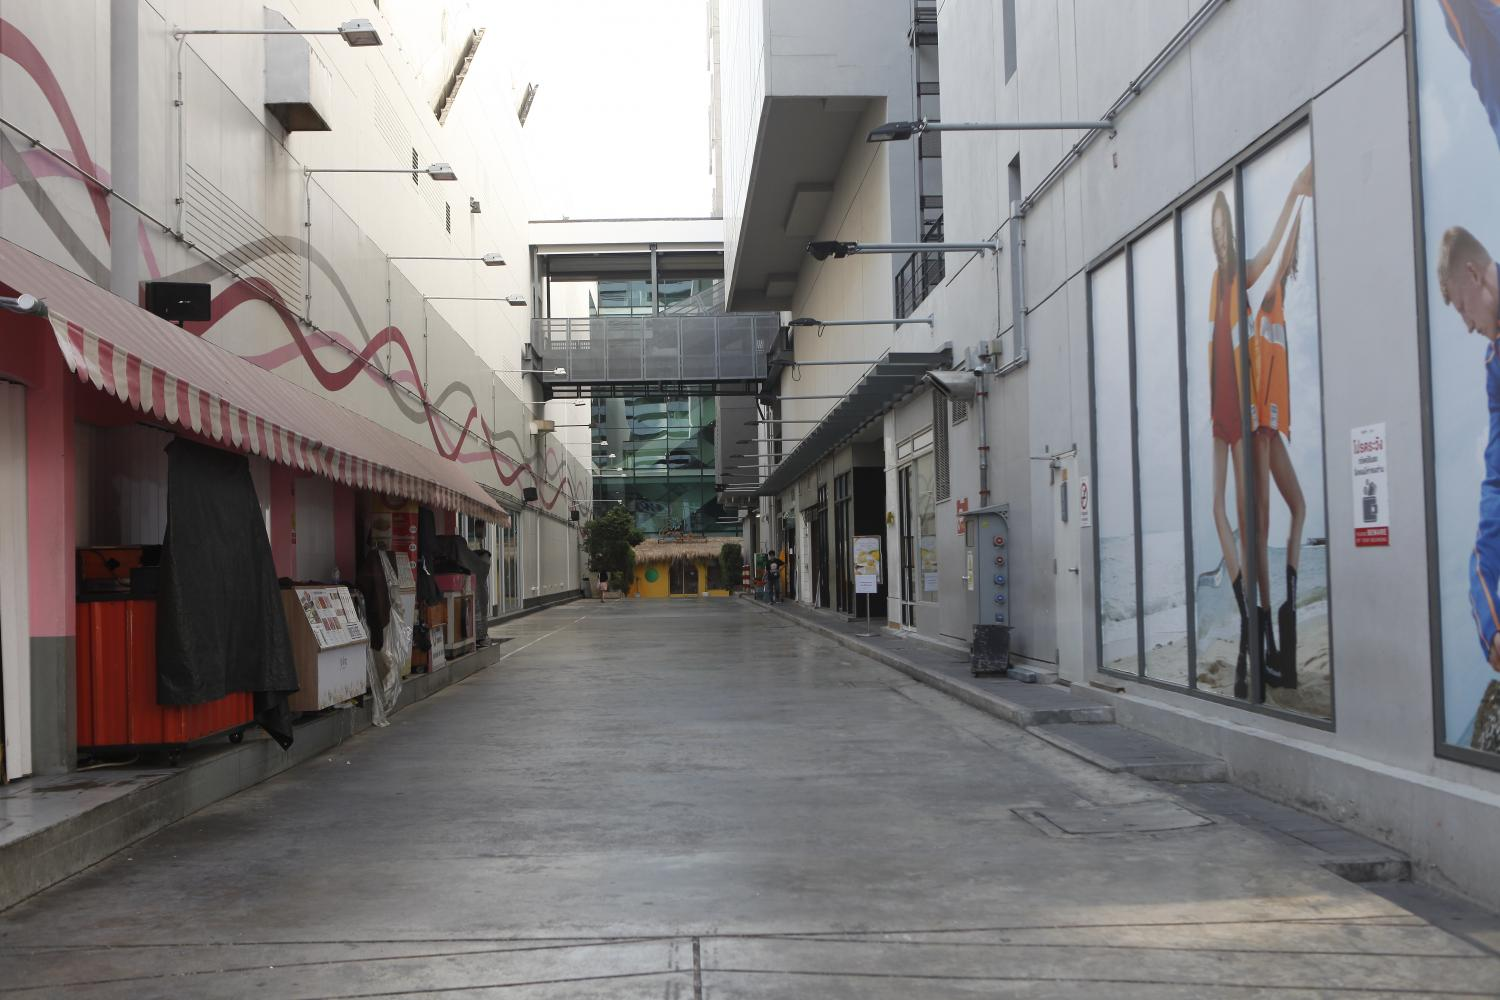 This April 23 photo shows an empty Siam Square with the pandemic having shut down the economy.Nutthawat Wicheanbut